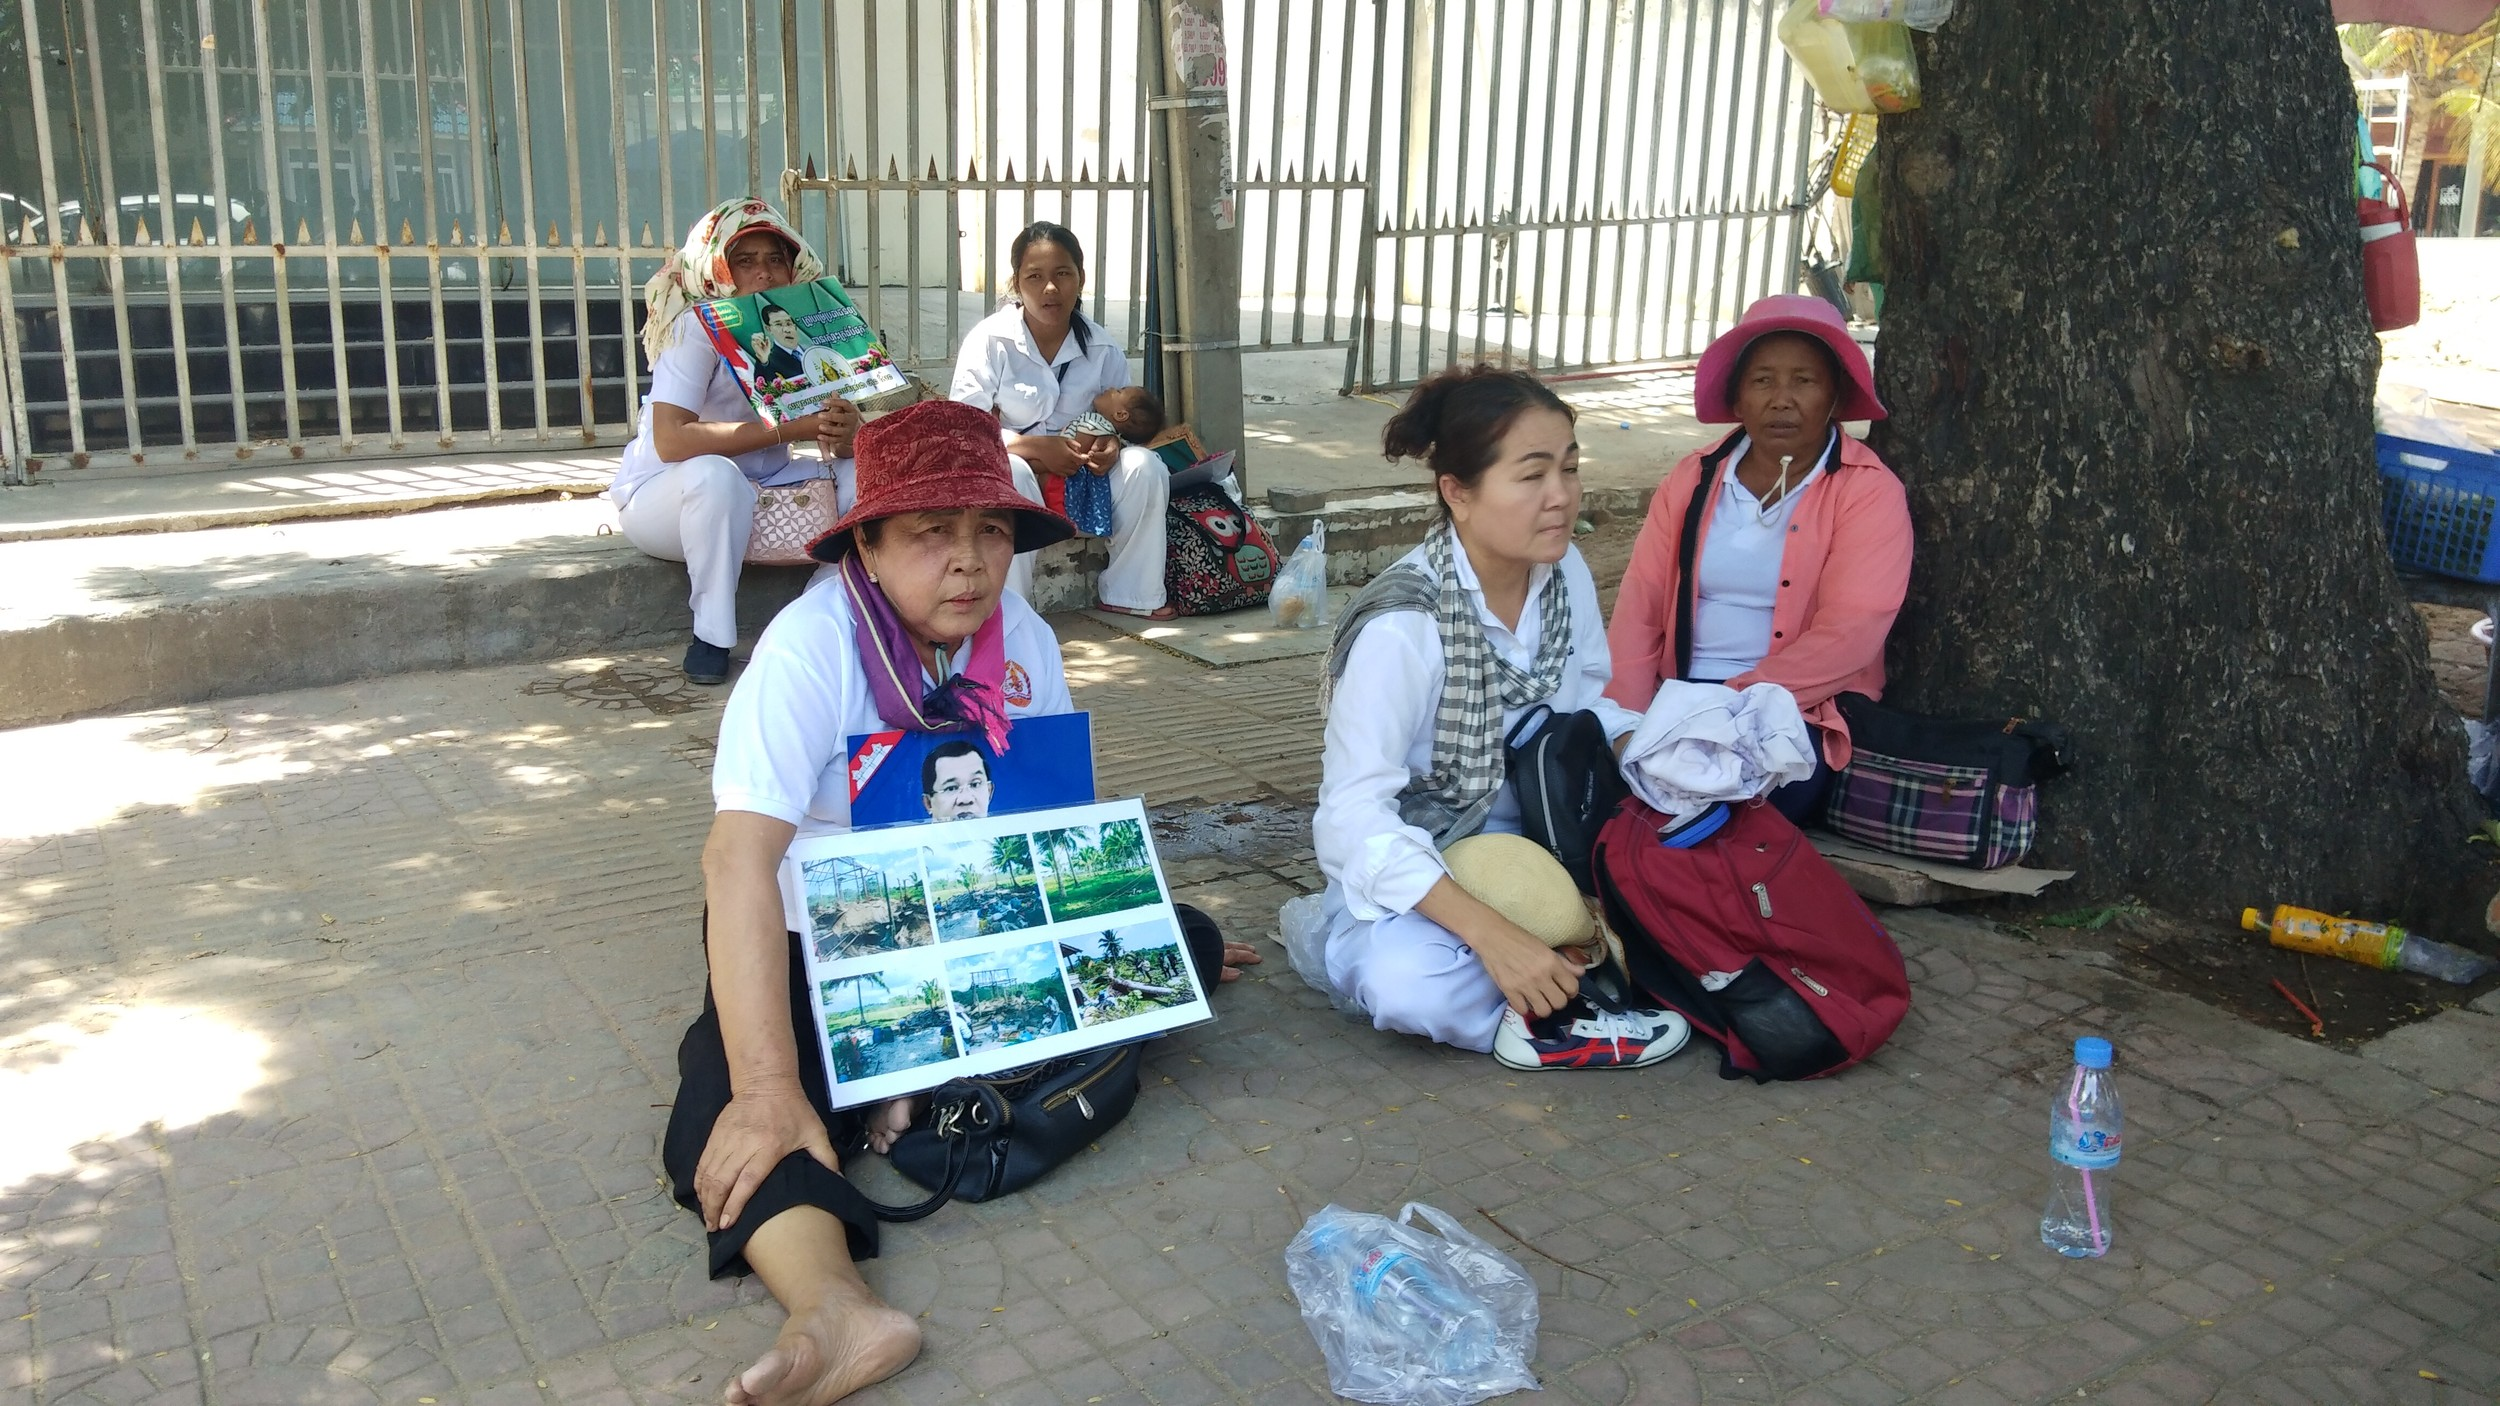 Villagers in a land dispute with UDG protest in front of Beijing's embassy in Phnom Penh, Cambodia, July 8, 2019.